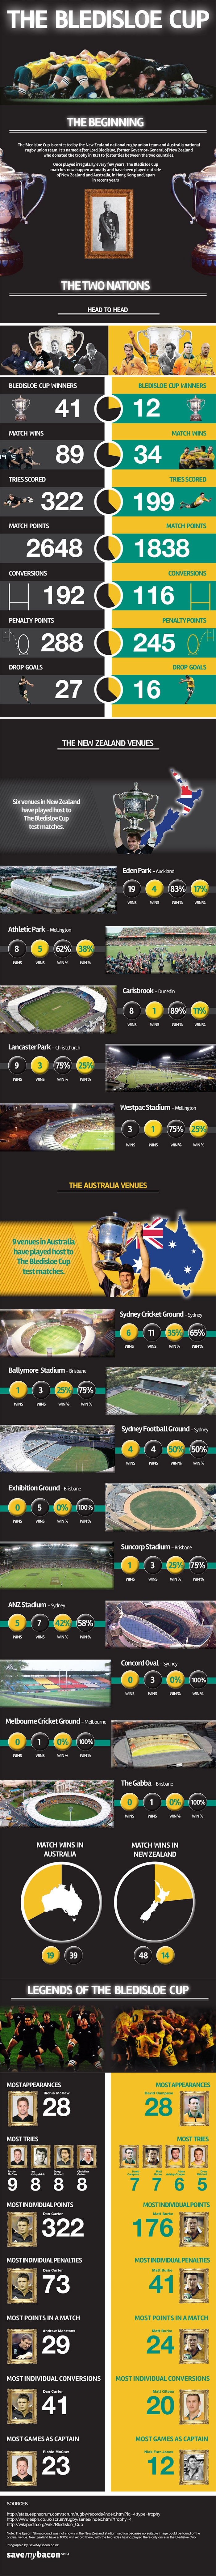 The Bledisloe Cup Infographic